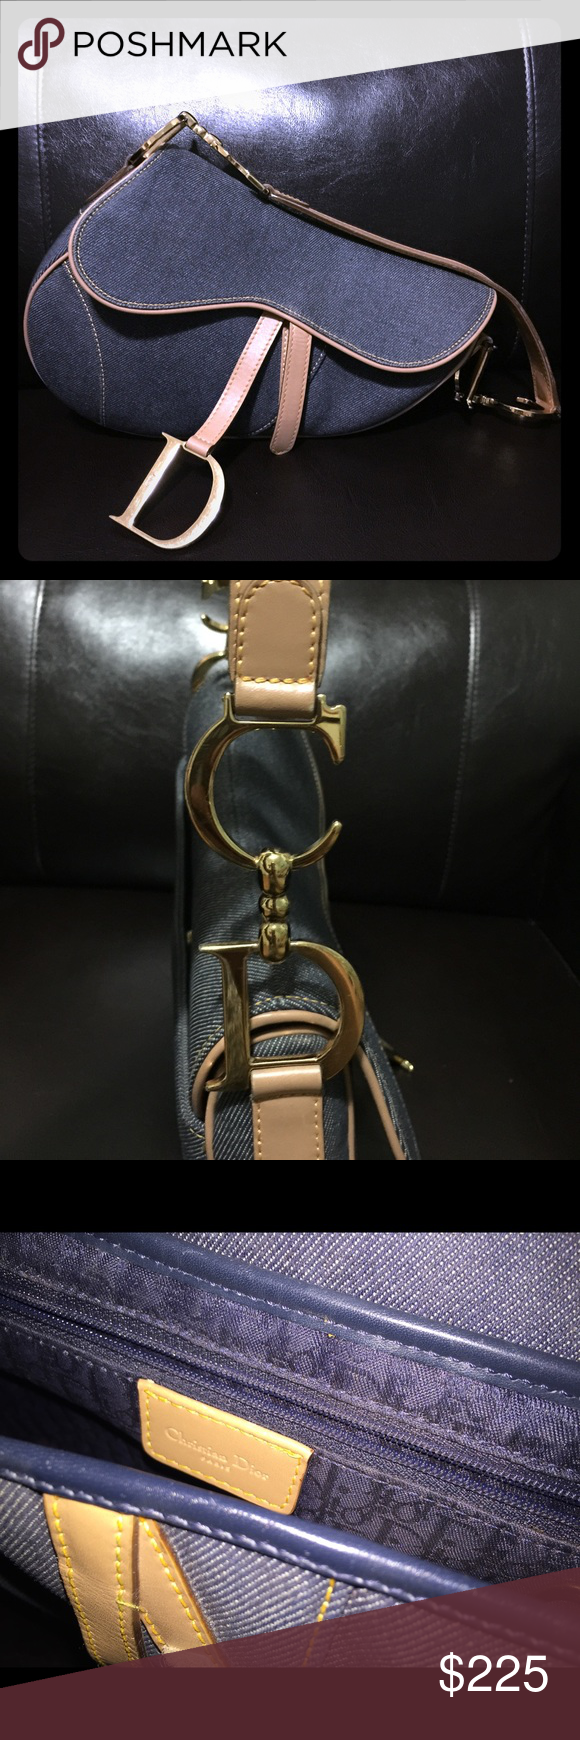 Dior denim saddle bag Great condition. Adds a special touch to any outfit. Clean inside and out. Dior Bags Shoulder Bags